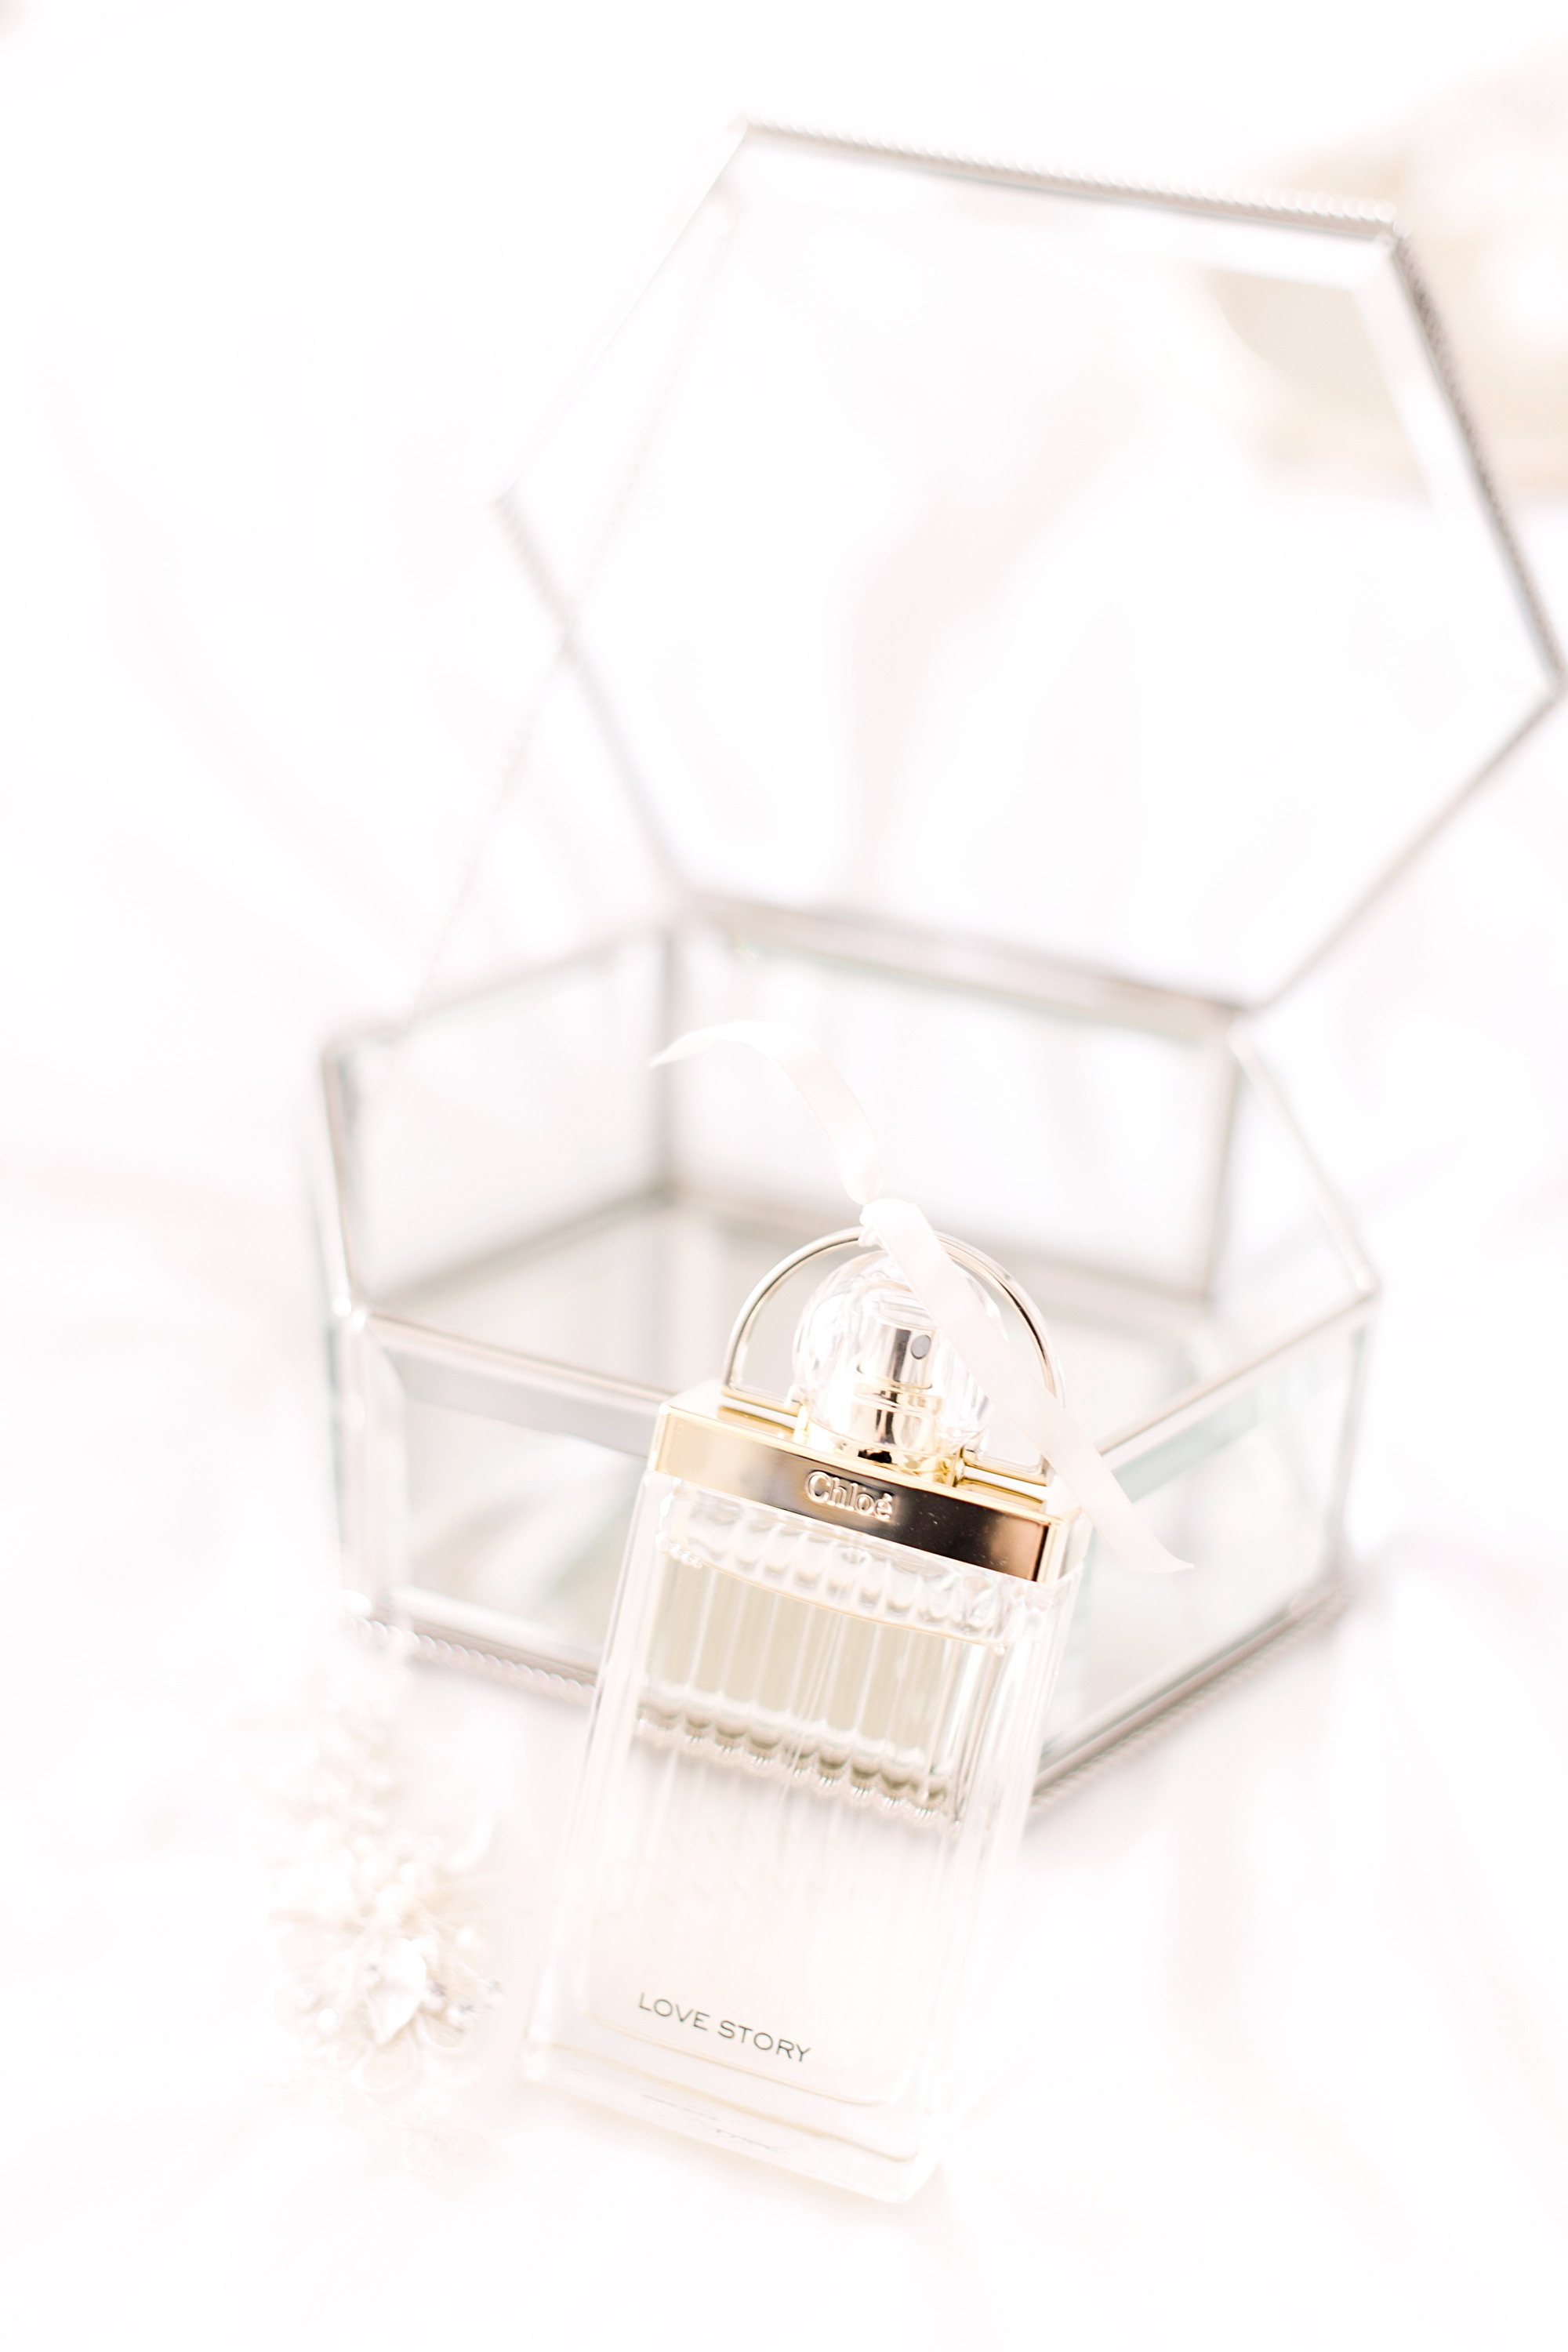 Chloe wedding day perfume